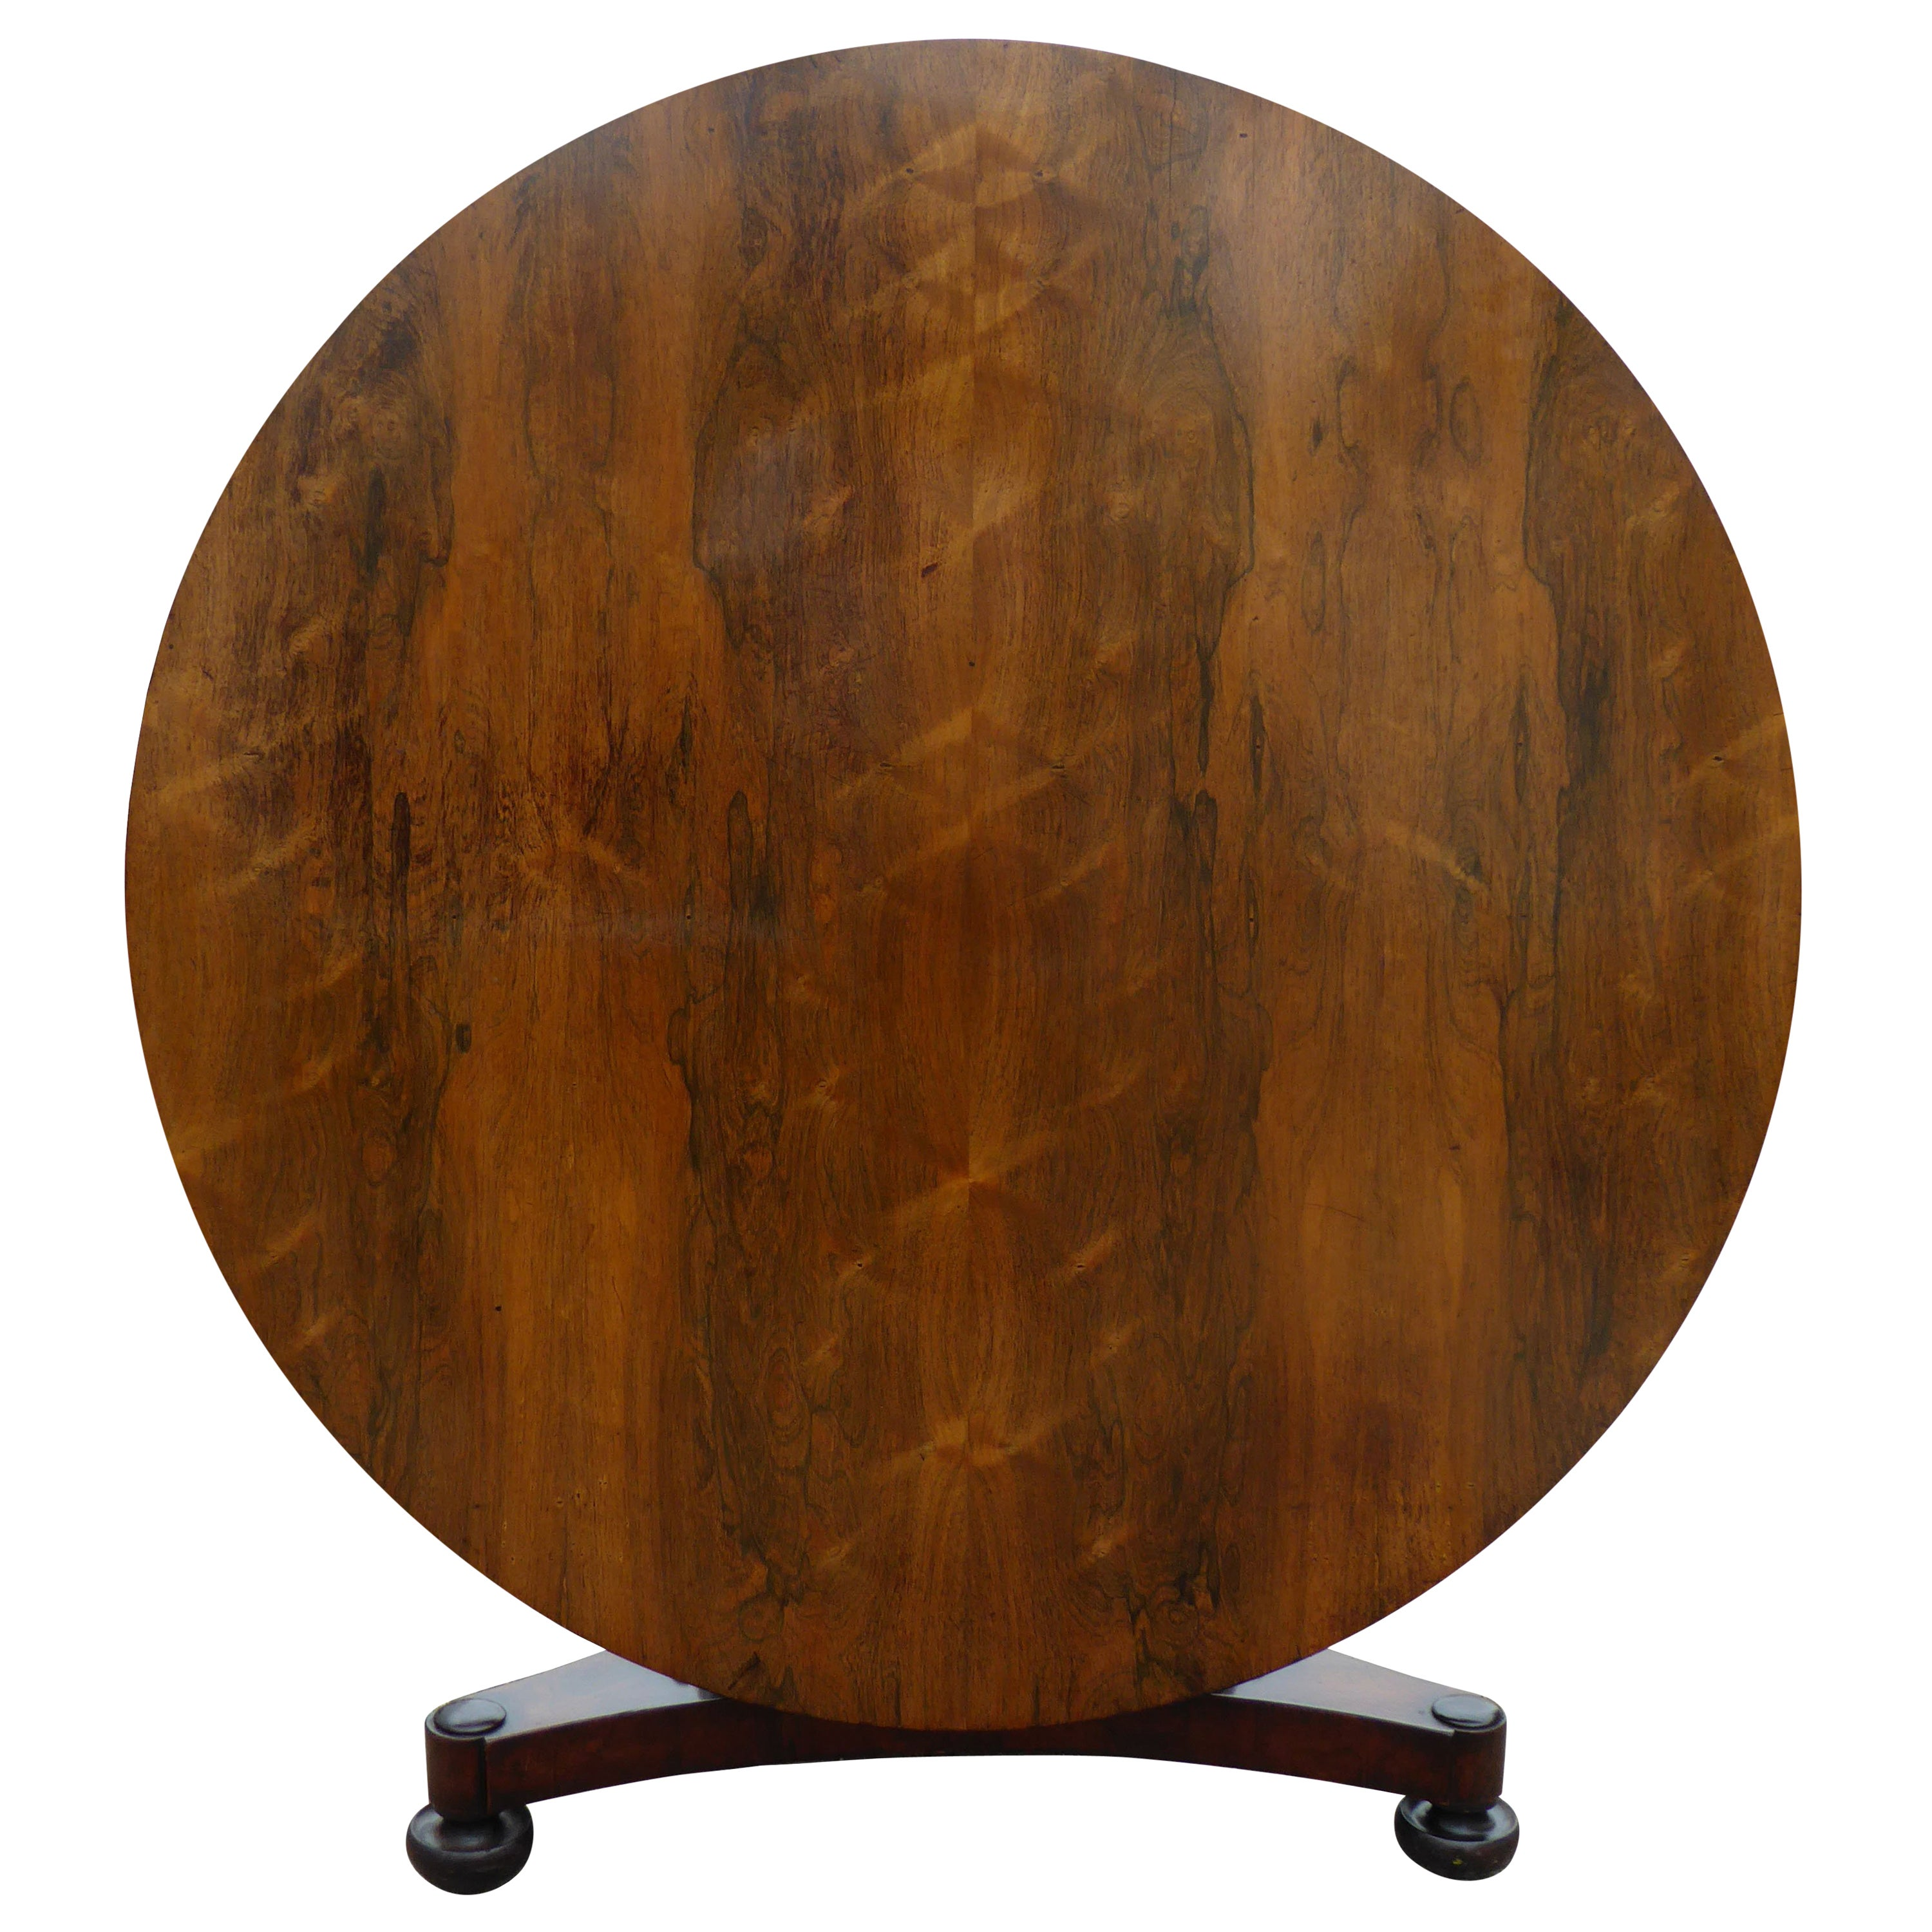 19th Century Regency Period Rosewood Round Dining Table